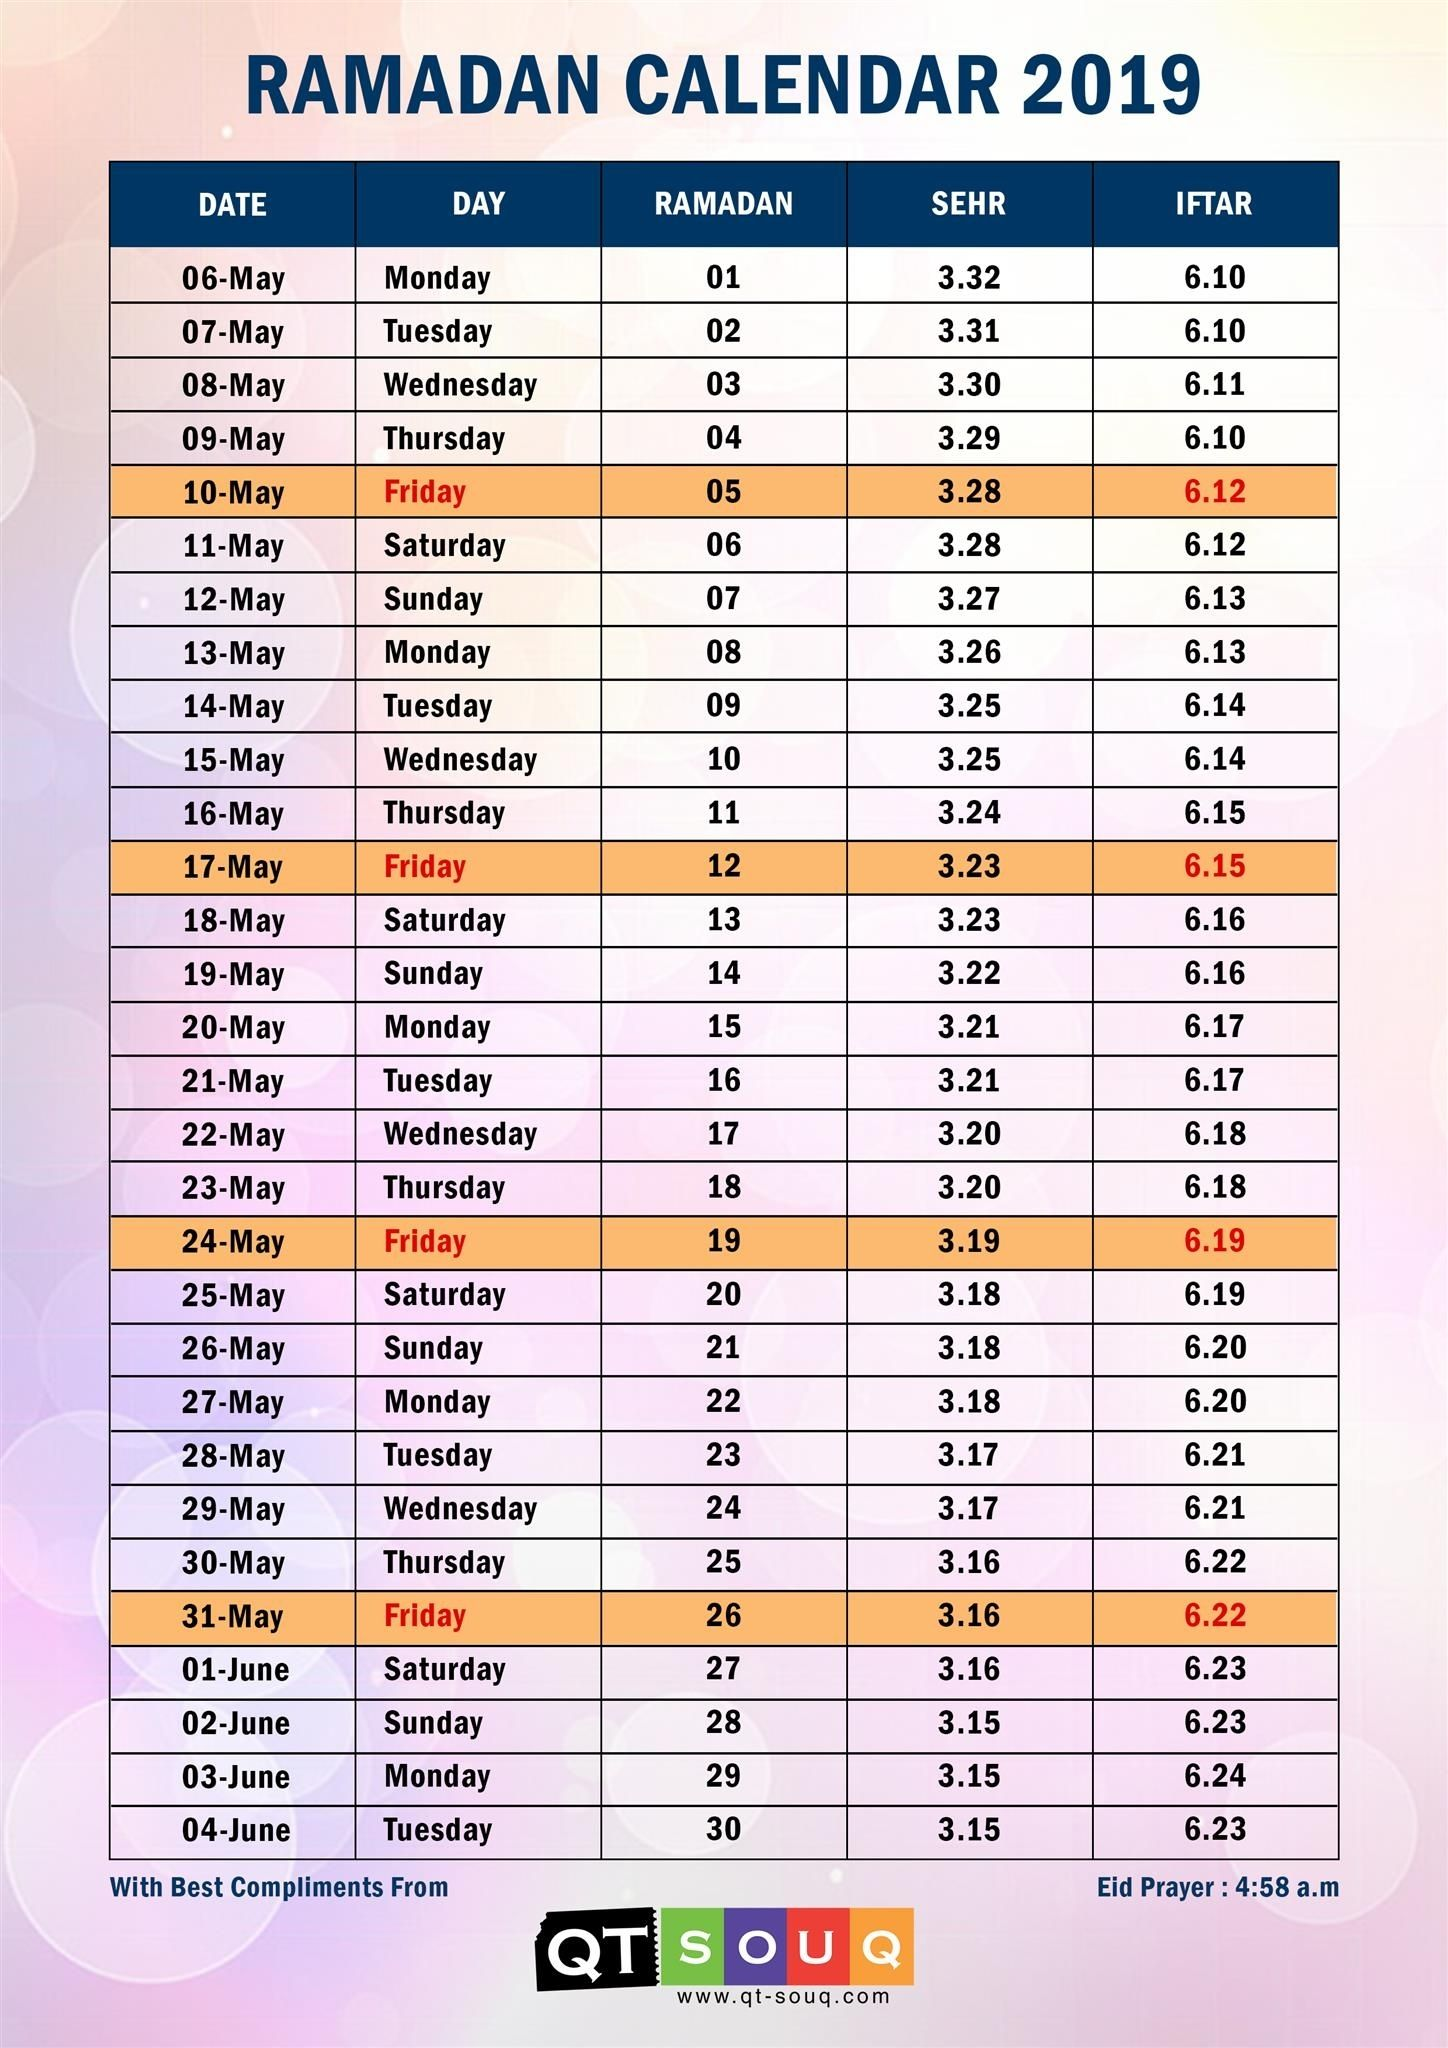 Islamic Calendar For Ramadan For The Future Islamic Calendar Ramadan Personal Calendar